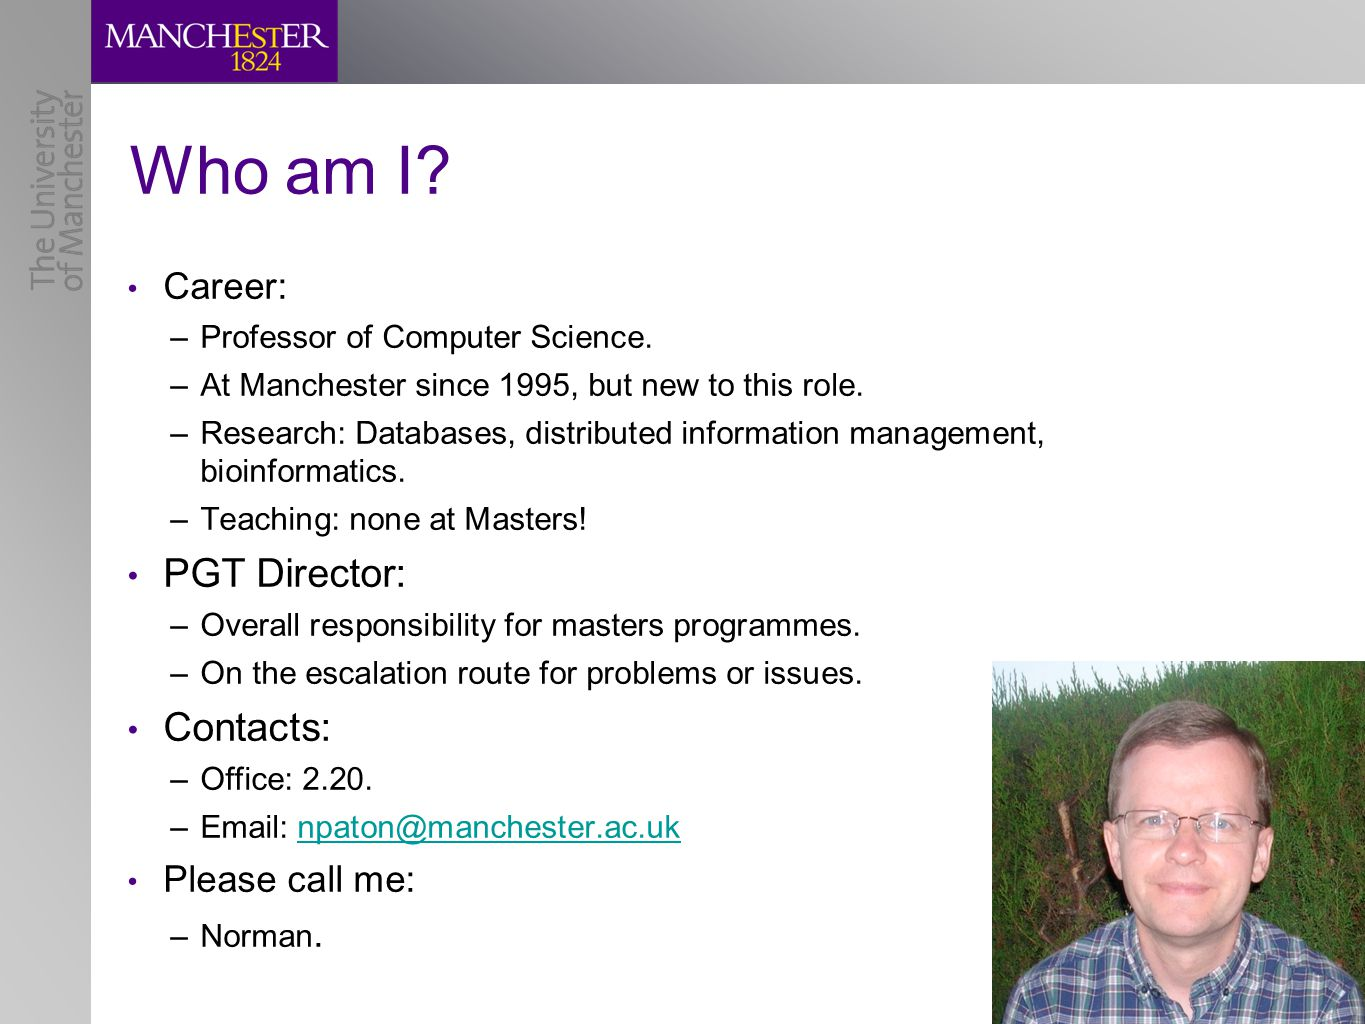 Who am I. Career: –Professor of Computer Science.